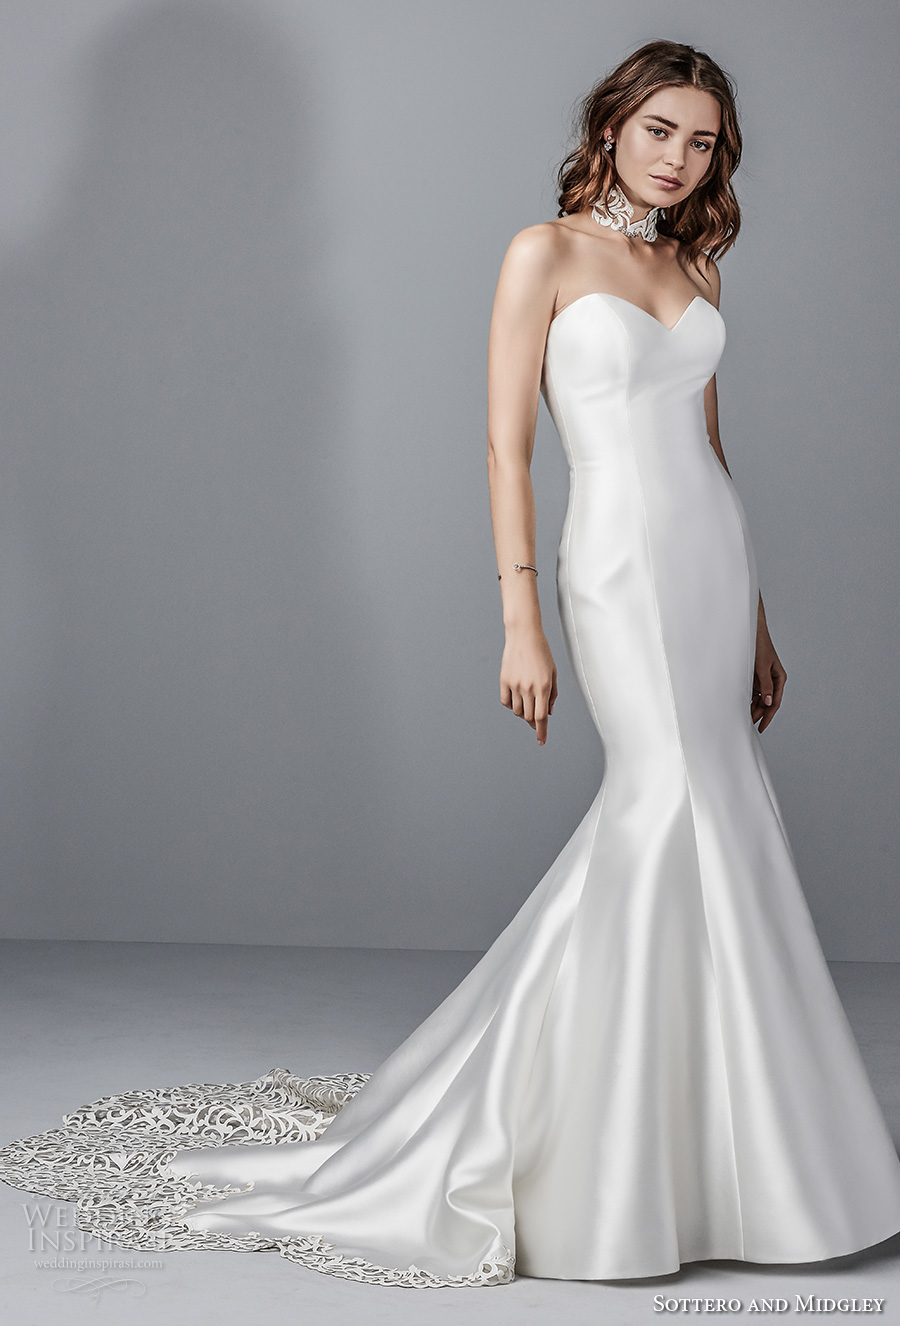 sottero midgley fall 2017 strapless sweetheart neckline simple clean satin elegant classic mermaid wedding dress chapel train (988) mv